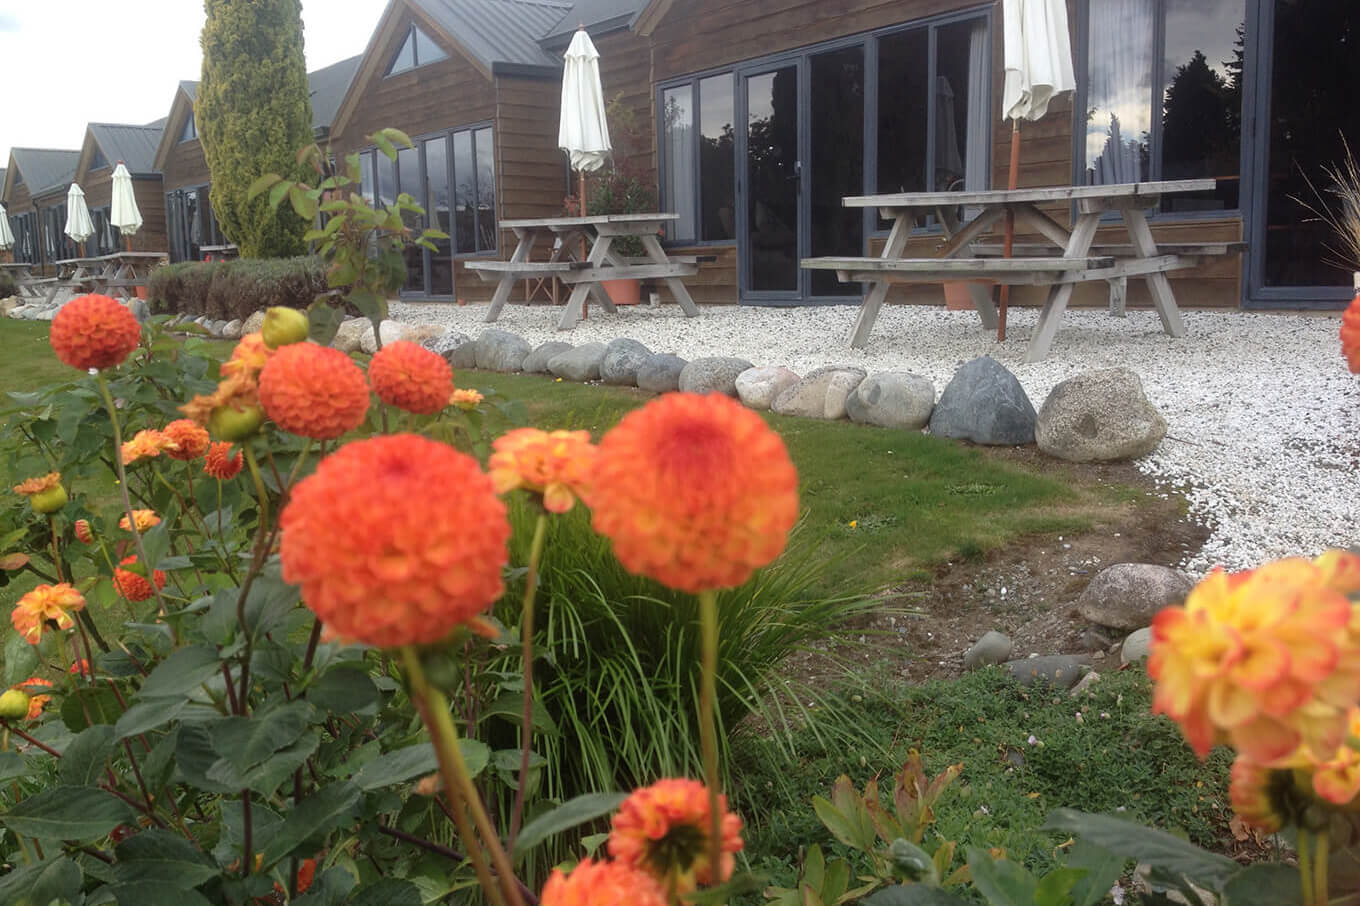 View of seating area outside Lakefront Lodge with orange dahlias in foreground